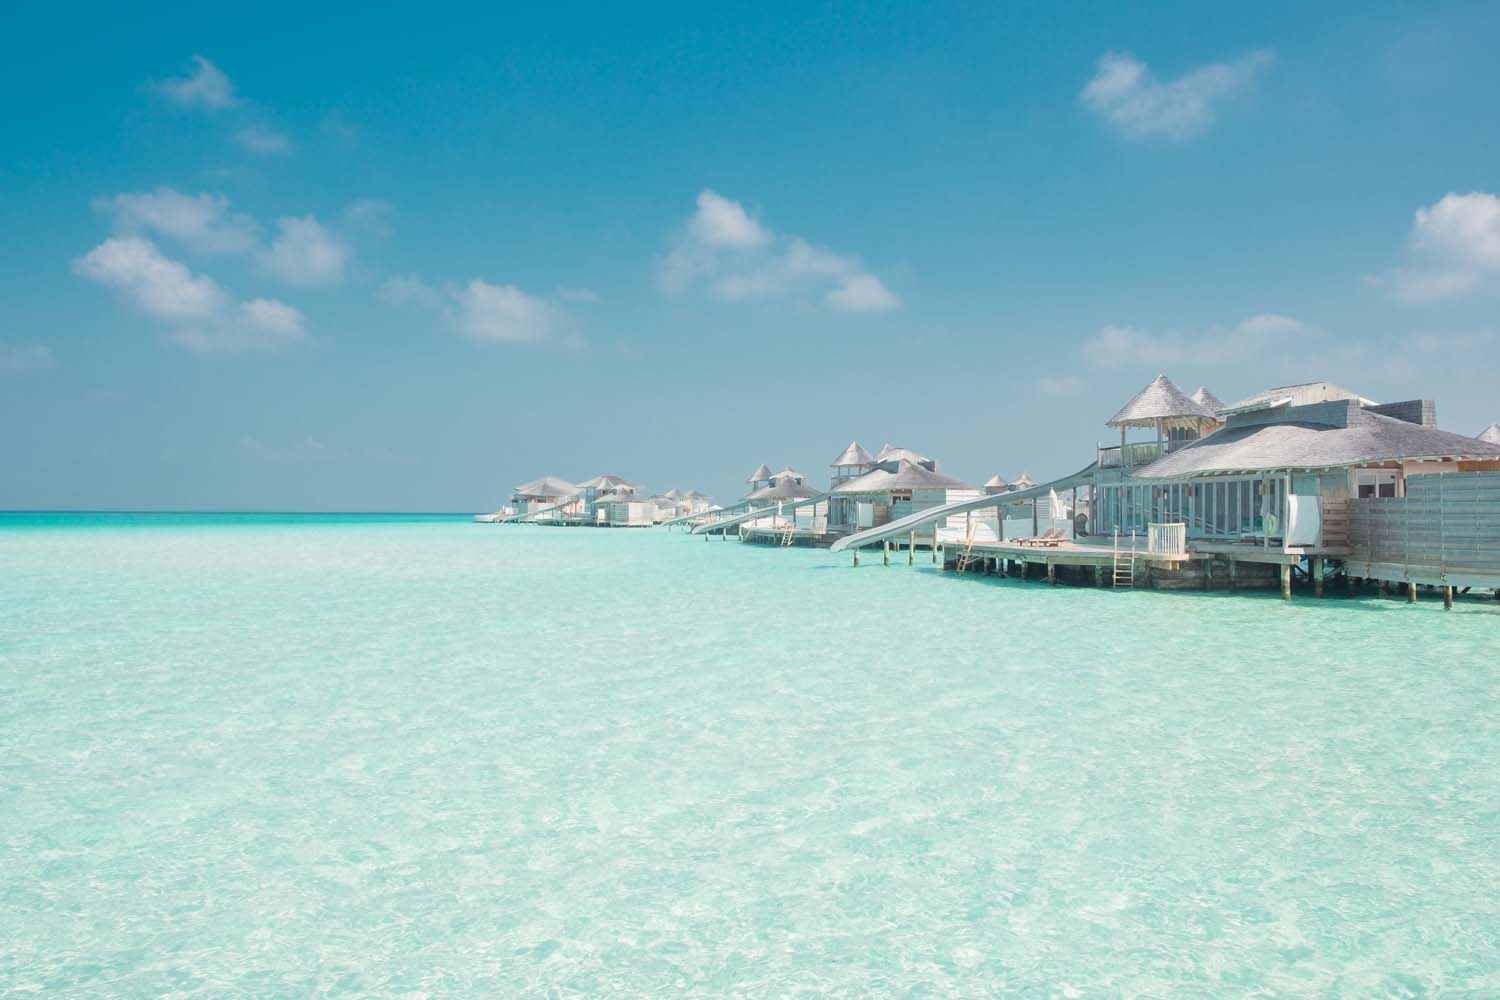 Looking for the best Maldives overwater bungalow? Read on what it is all about to stay at Soneva Jani, sleep at a water villa with your own slide & retractable roof to fall asleep under the stars.